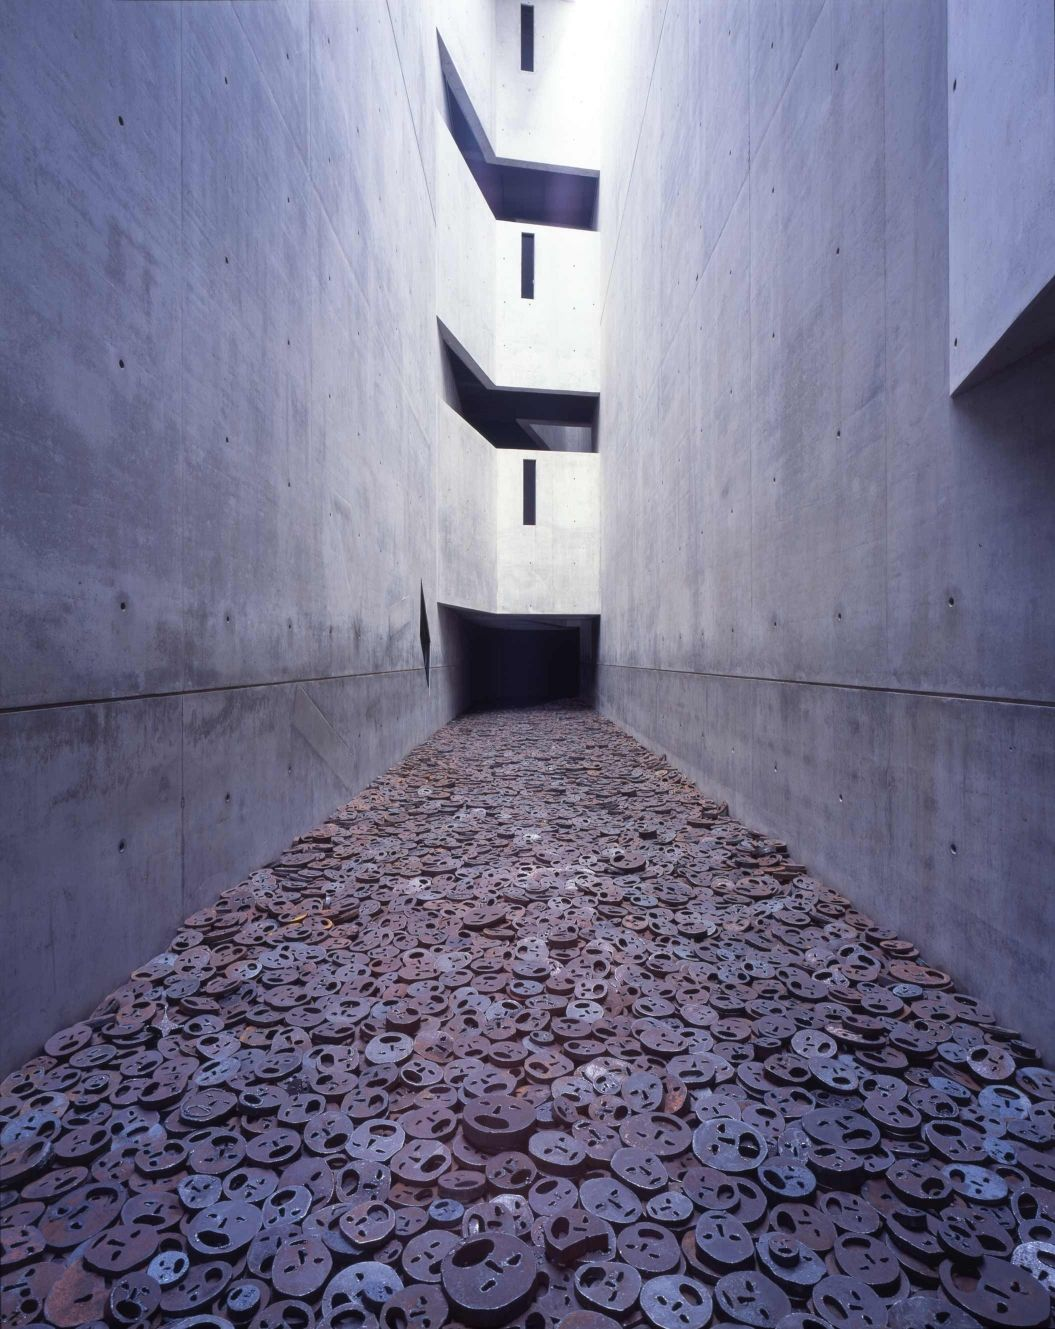 Visit Jewish Museum Berlin Explore The History Consistent Durable And Strong Cultural Identity Of Jewish Living Nomads Travel Tips Guides News Inf Jewish Museum Berlin Jewish Museum Daniel Libeskind